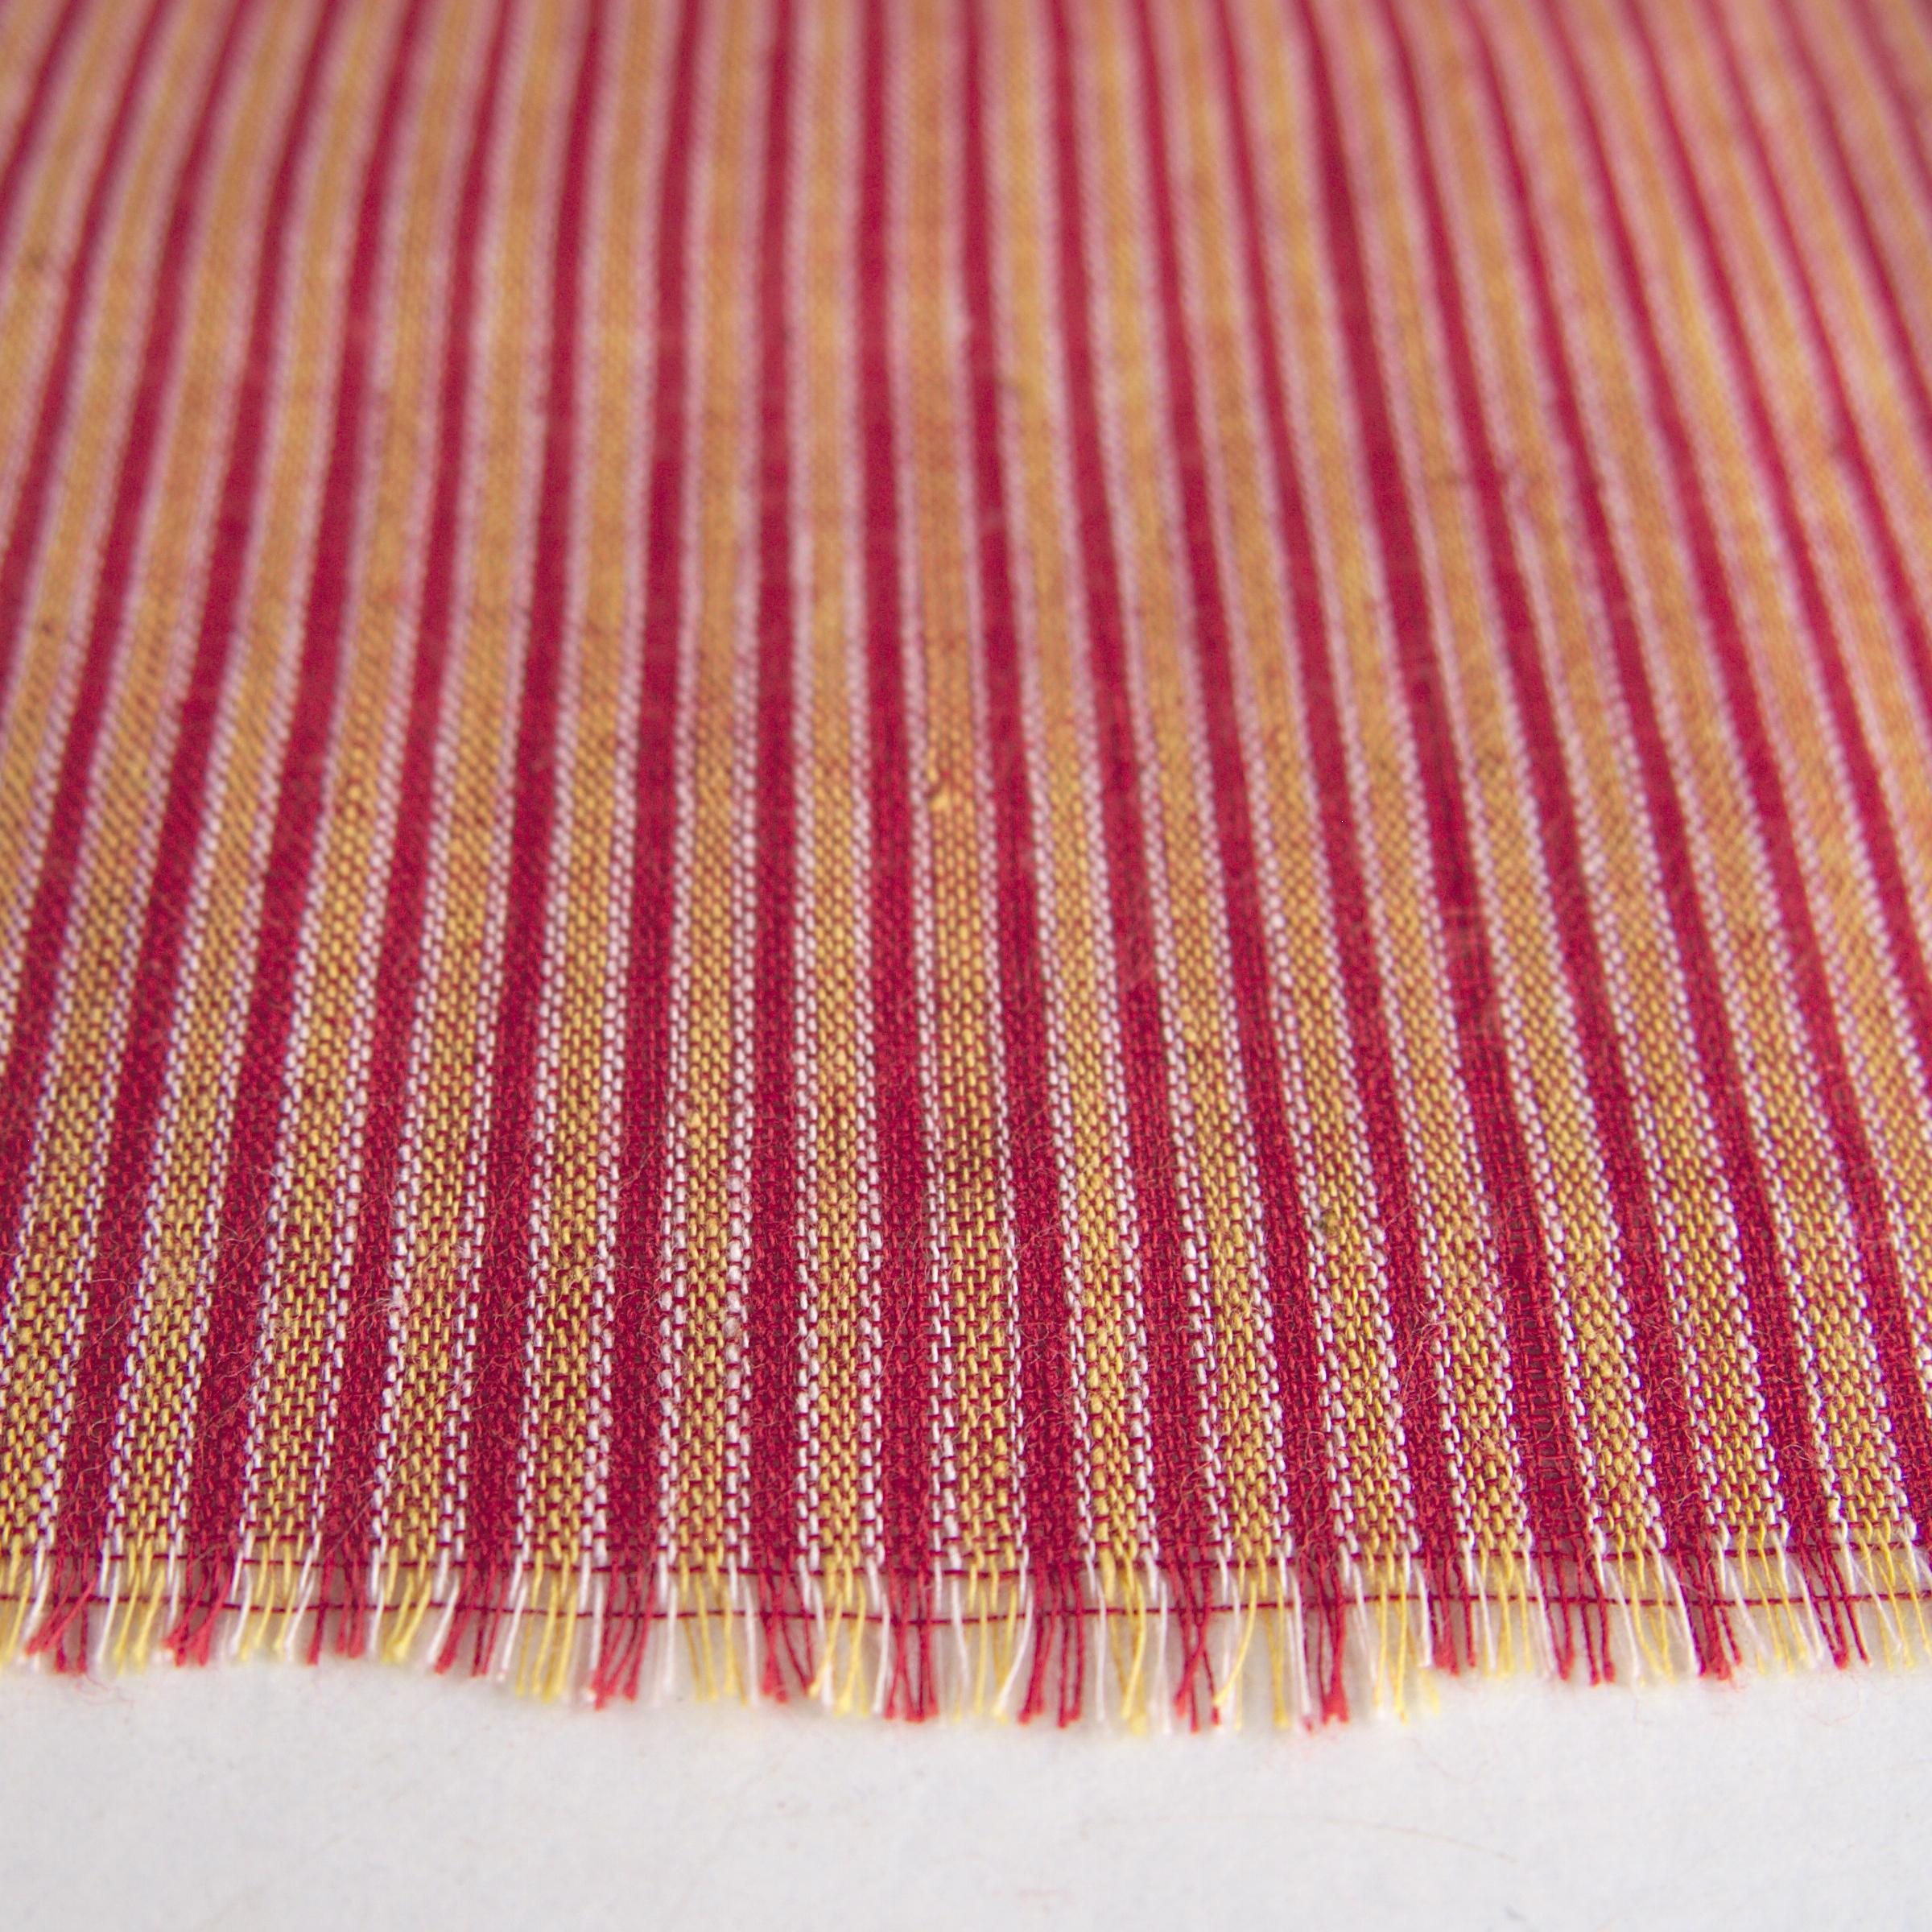 100% Handloom Woven Cotton - Double Stripes - Alizarin Red Warp & Weft, White and Pomegranate Yellow Warp - Close Up